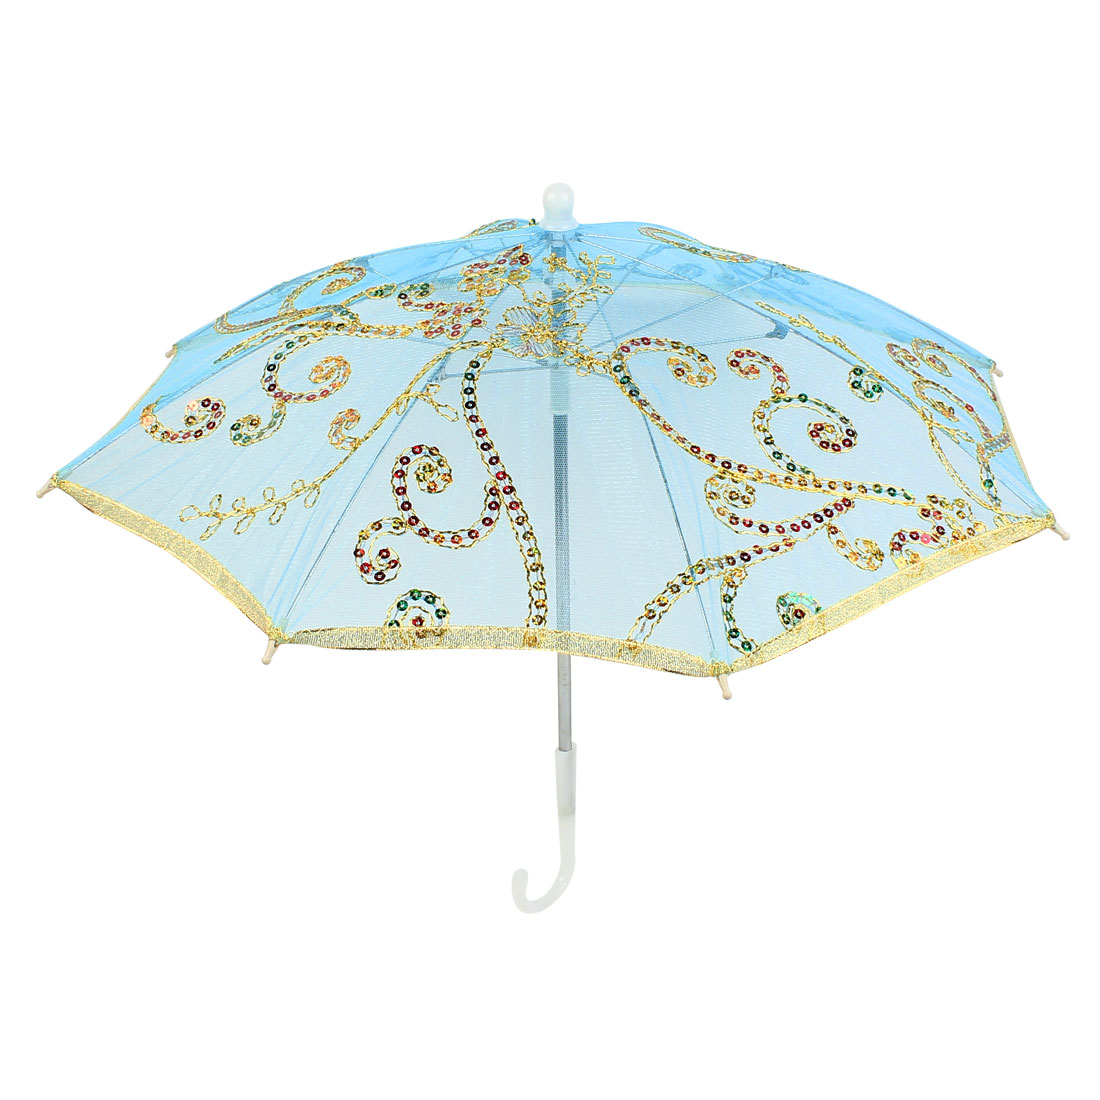 Gold Tone Embroidery Flower Foldable Dancing Parasol Umbrella Blue